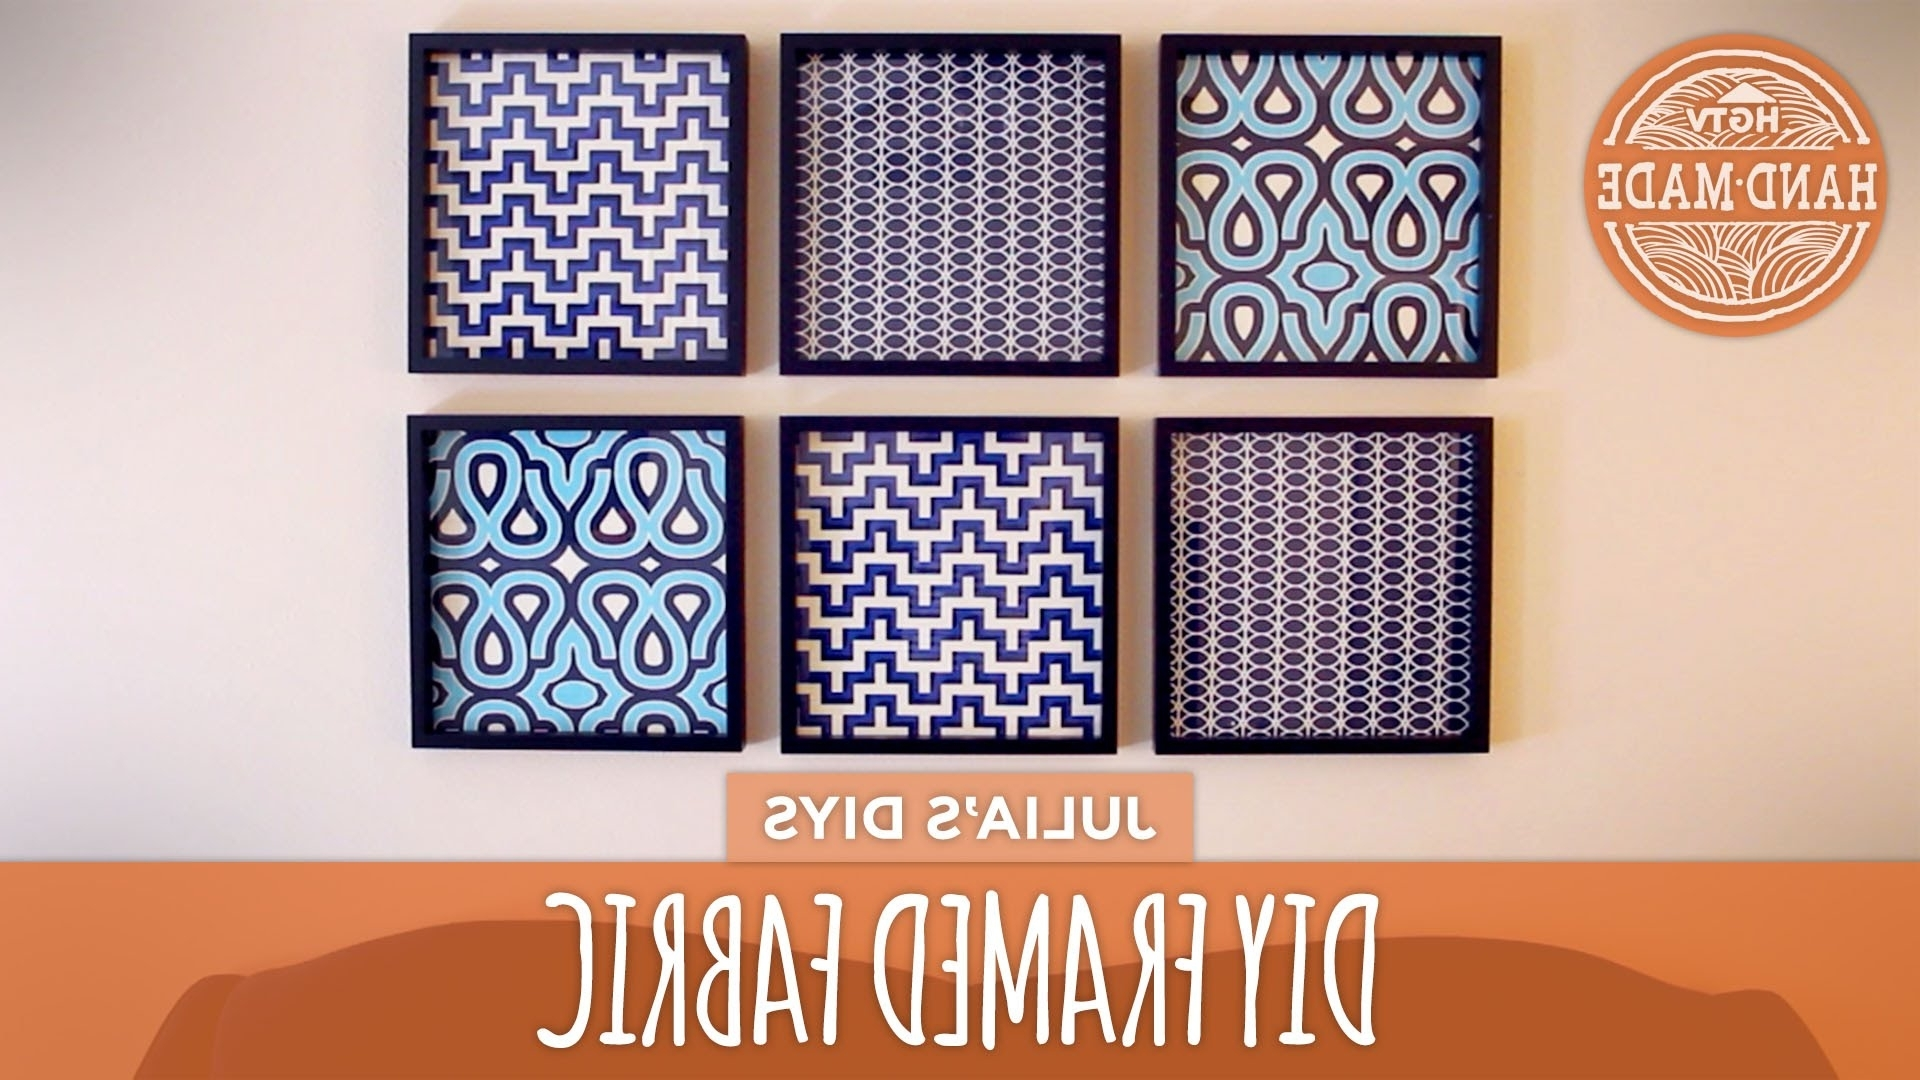 Diy Framed Fabric Gallery Wall – Hgtv Handmade – Youtube Throughout Favorite Cheap Fabric Wall Art (View 5 of 15)